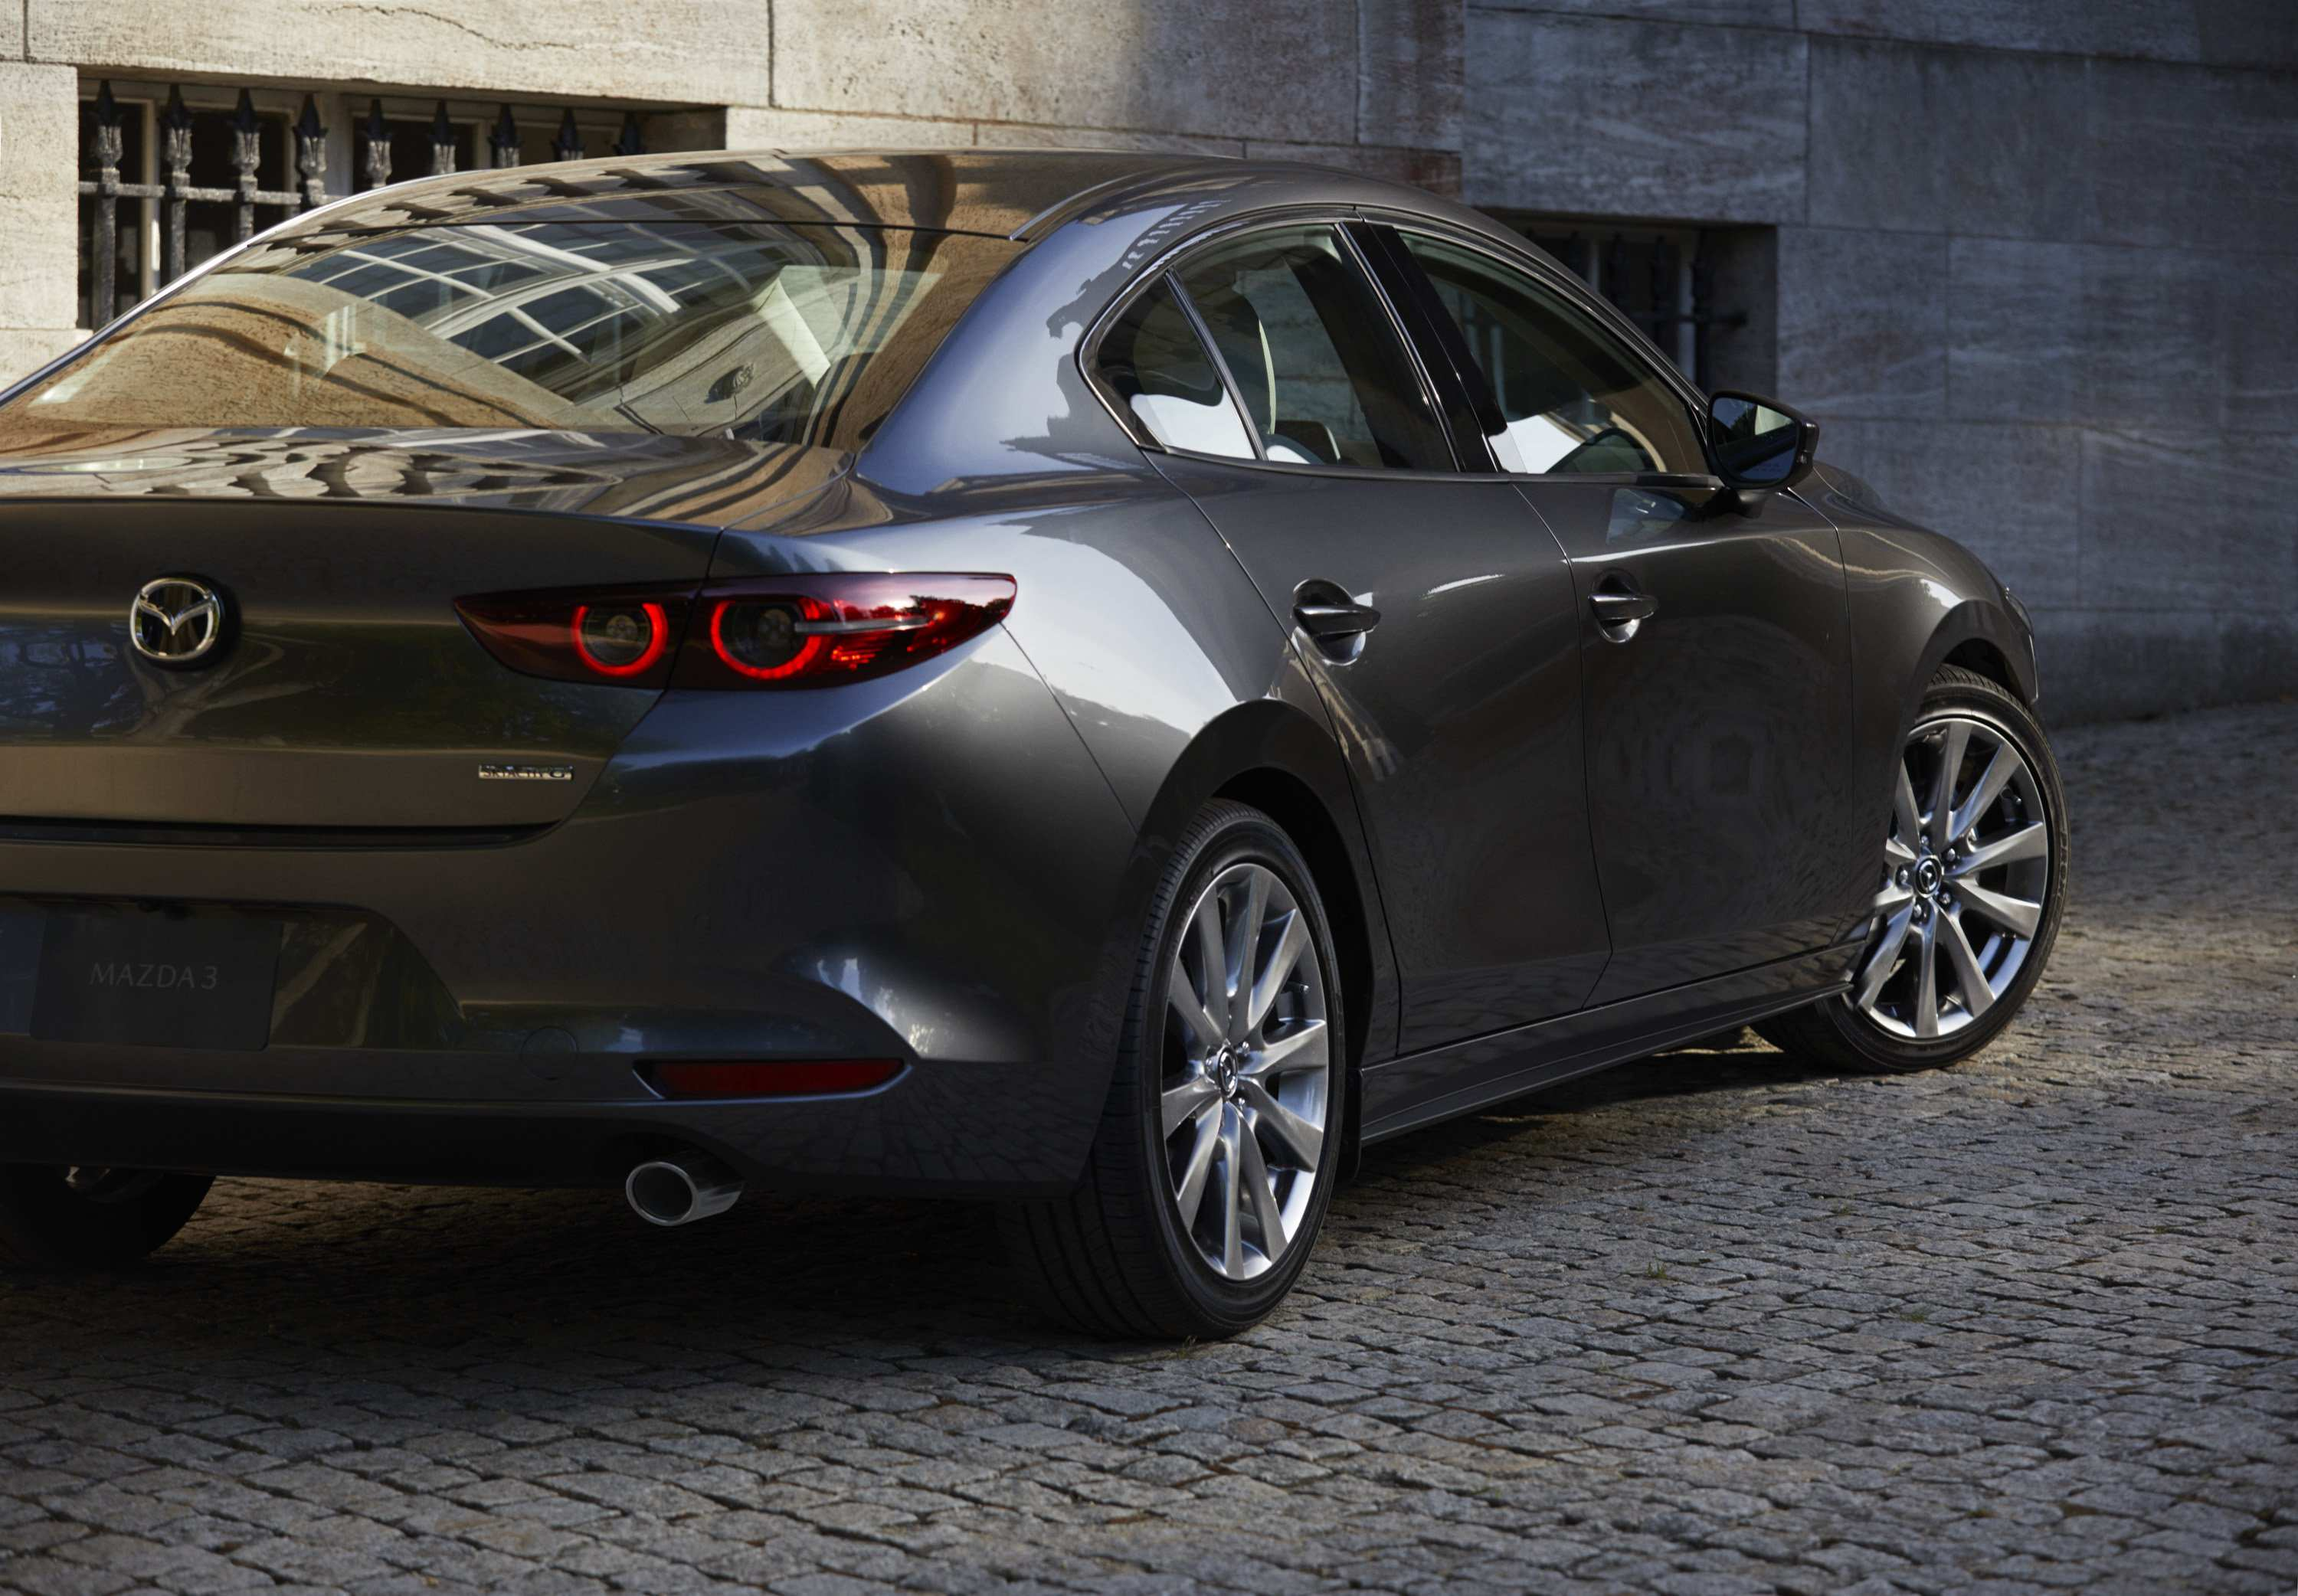 34 New Mazda 2019 Facelift New Review Release for Mazda 2019 Facelift New Review